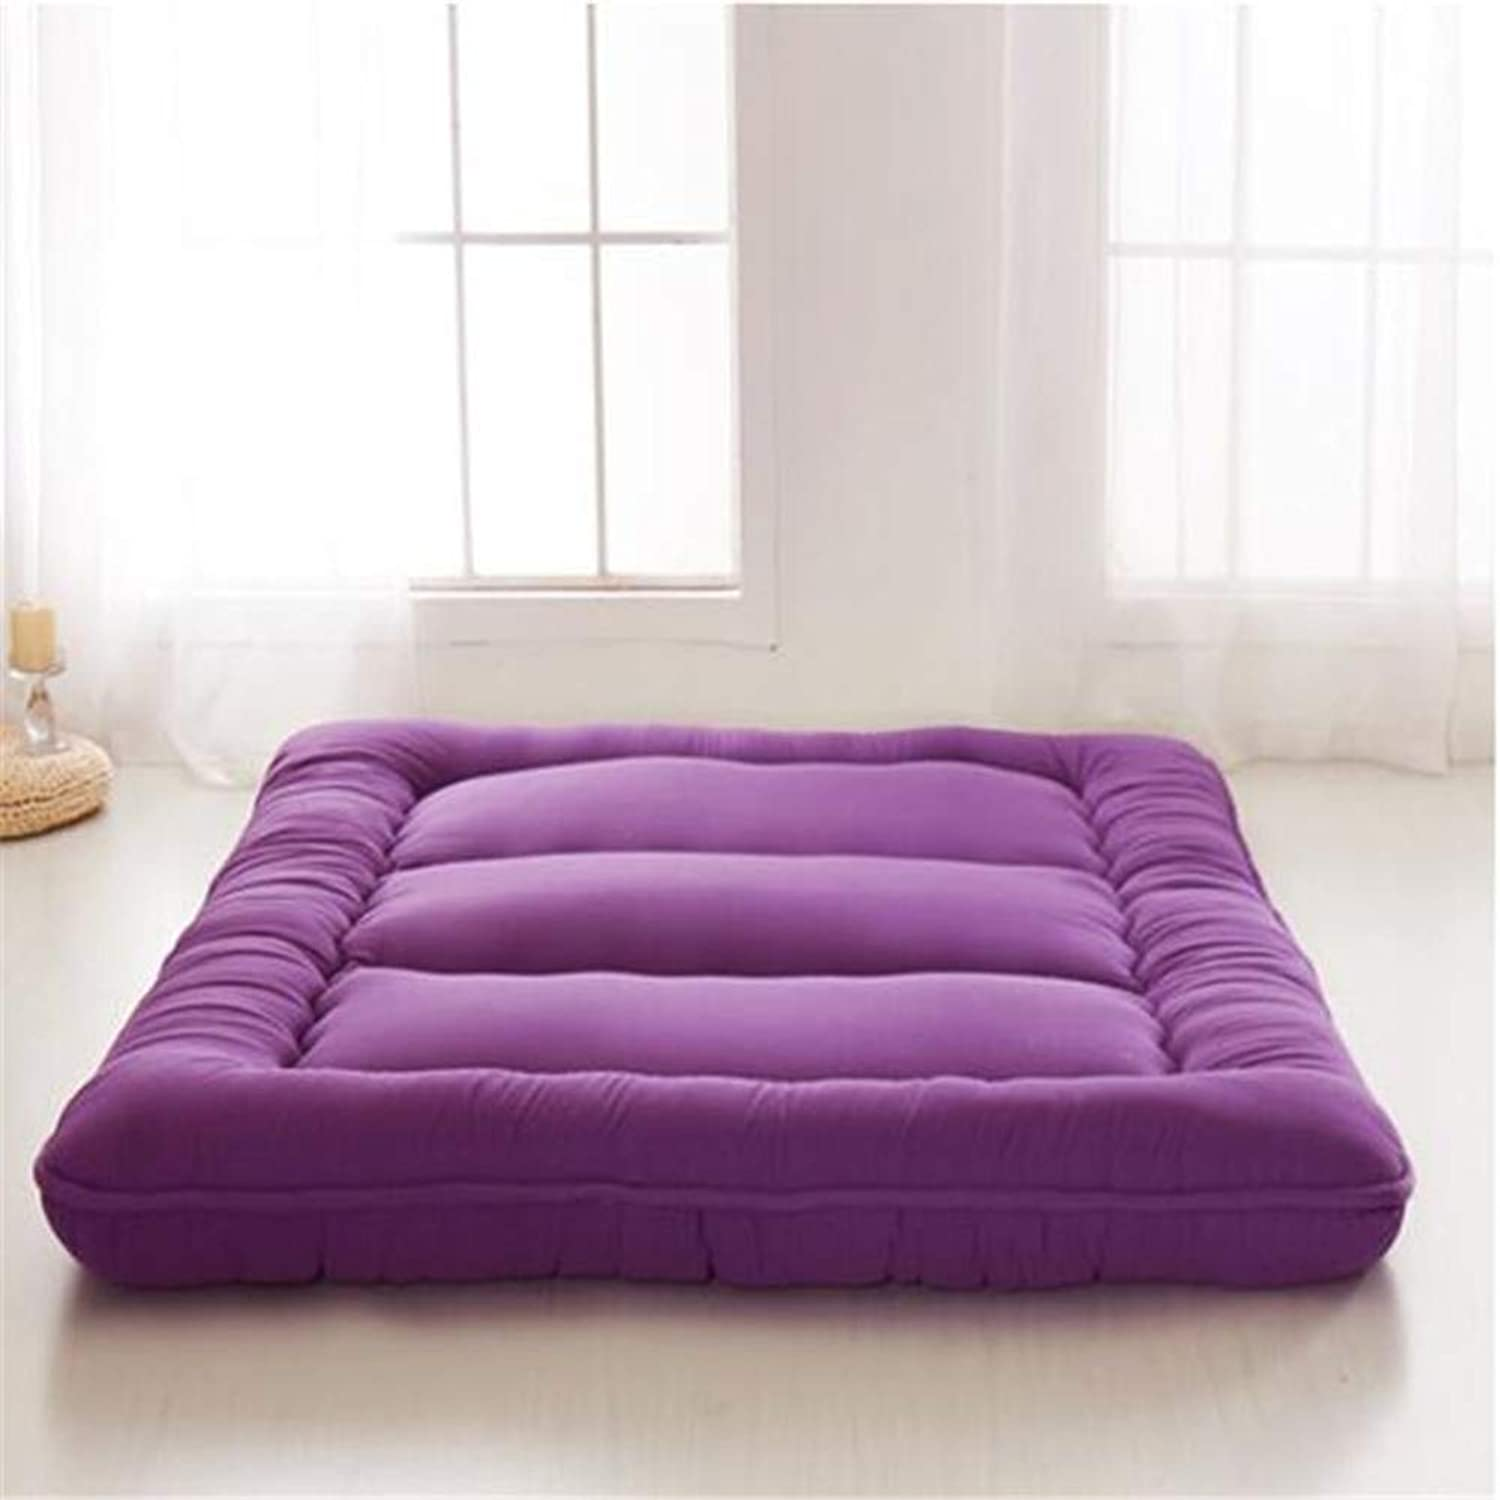 Mattress Sleeping Tatami Floor Mat Collapsible Soft Thick Mattres Traditional Futon Mat Japanese Bed Roll Student Dormitory Mattress (color   Purple, Size   120x200cm(47x79inch))